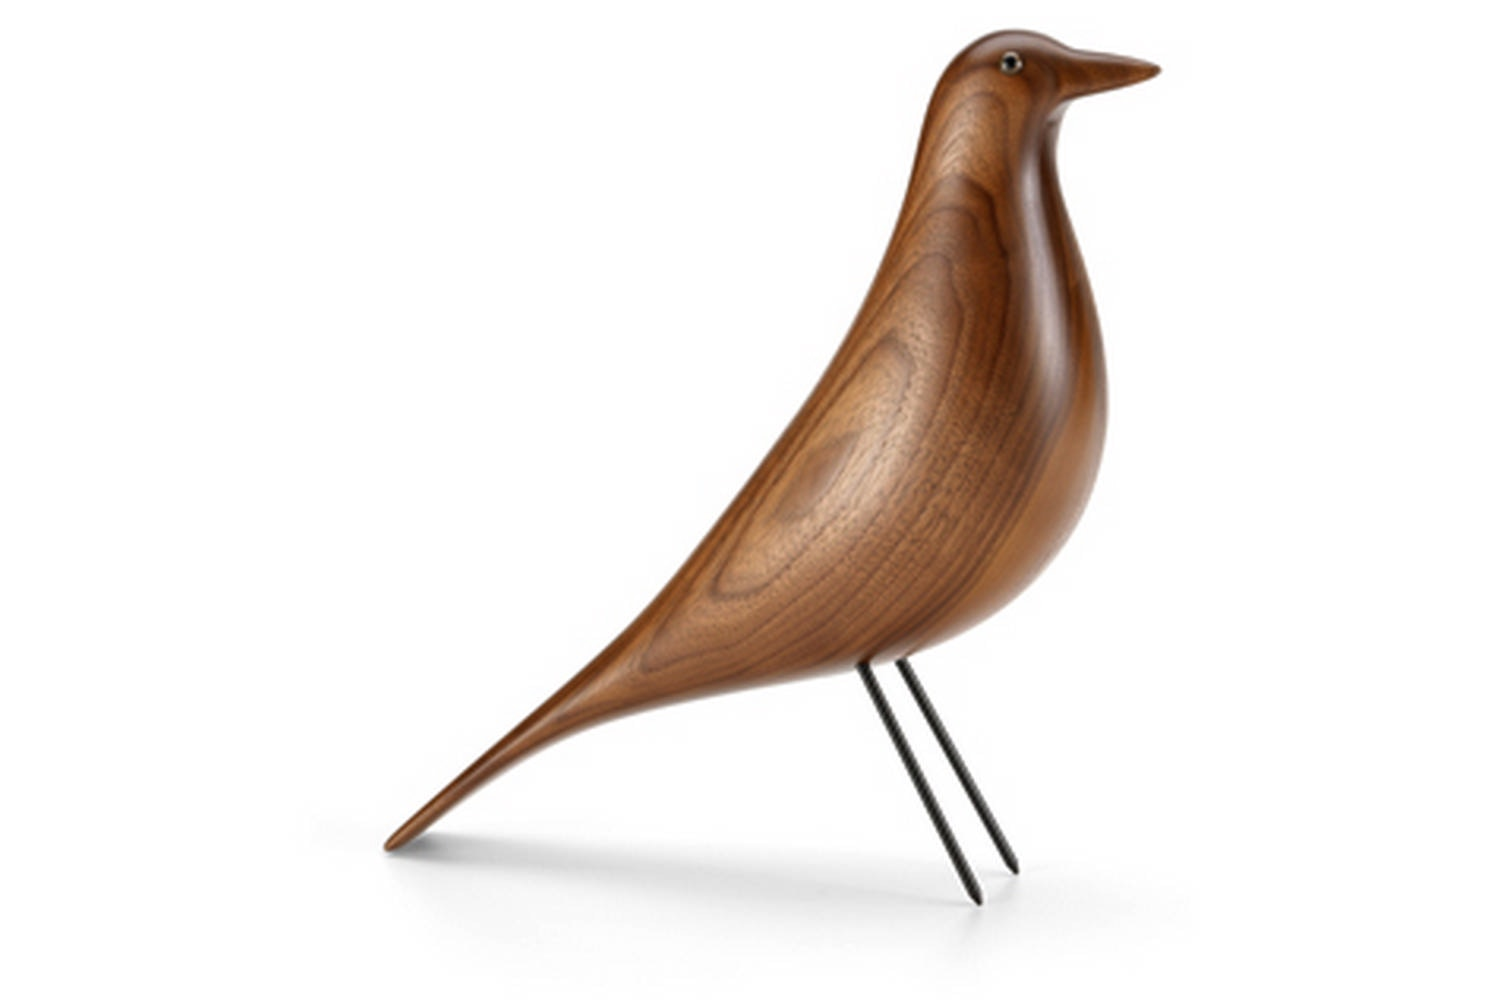 Eames House Bird - Walnut by Charles & Ray Eames for Vitra